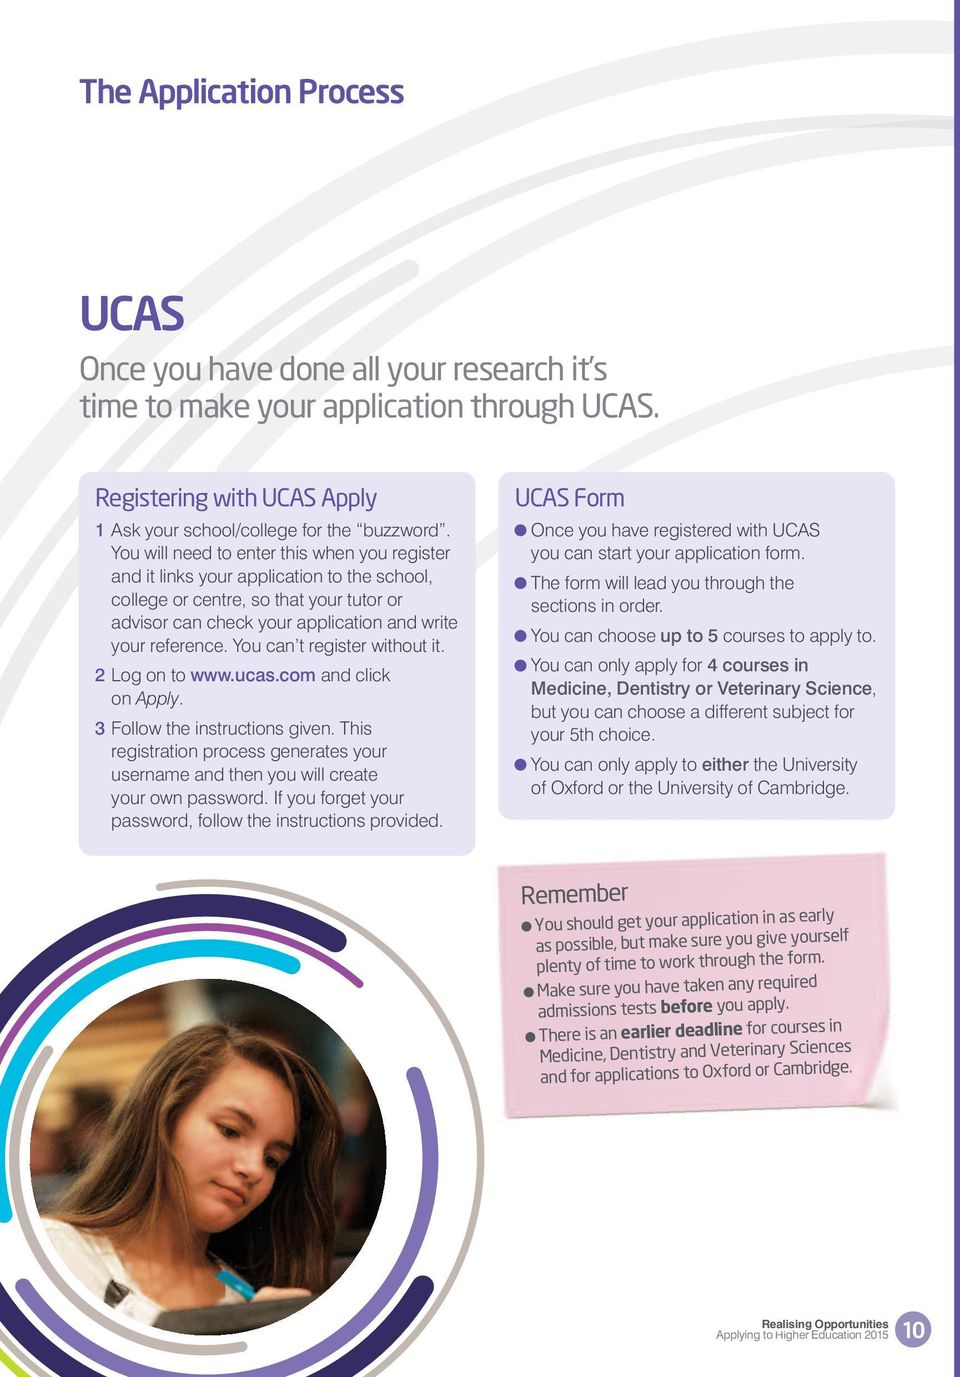 You can t register without it. 2 Log on to www.ucas.com and click on Apply. 3 Follow the instructions given.